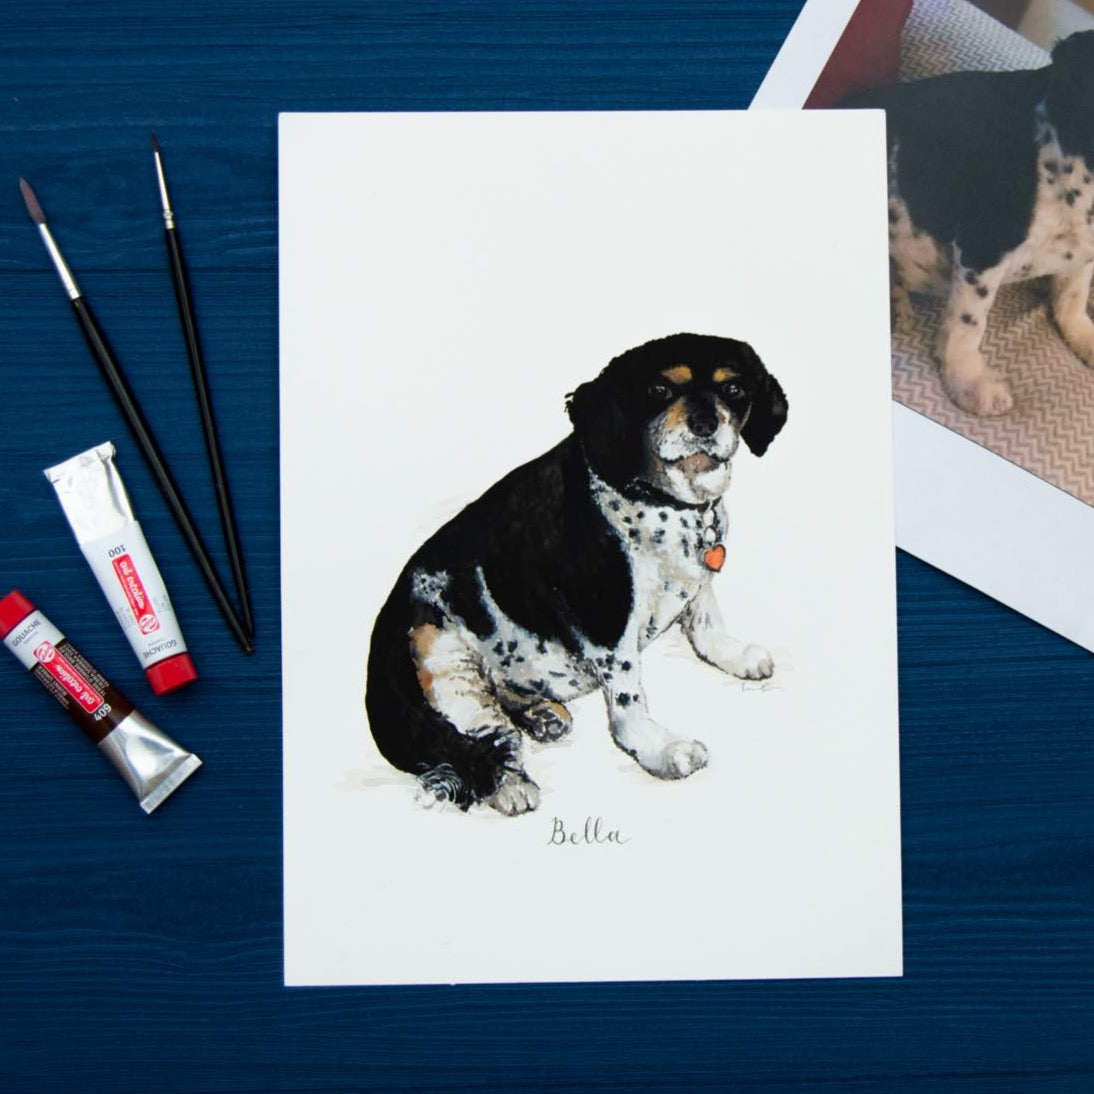 Painting of a black and white dog on a blue background with paint brushes and two tubes of paint.